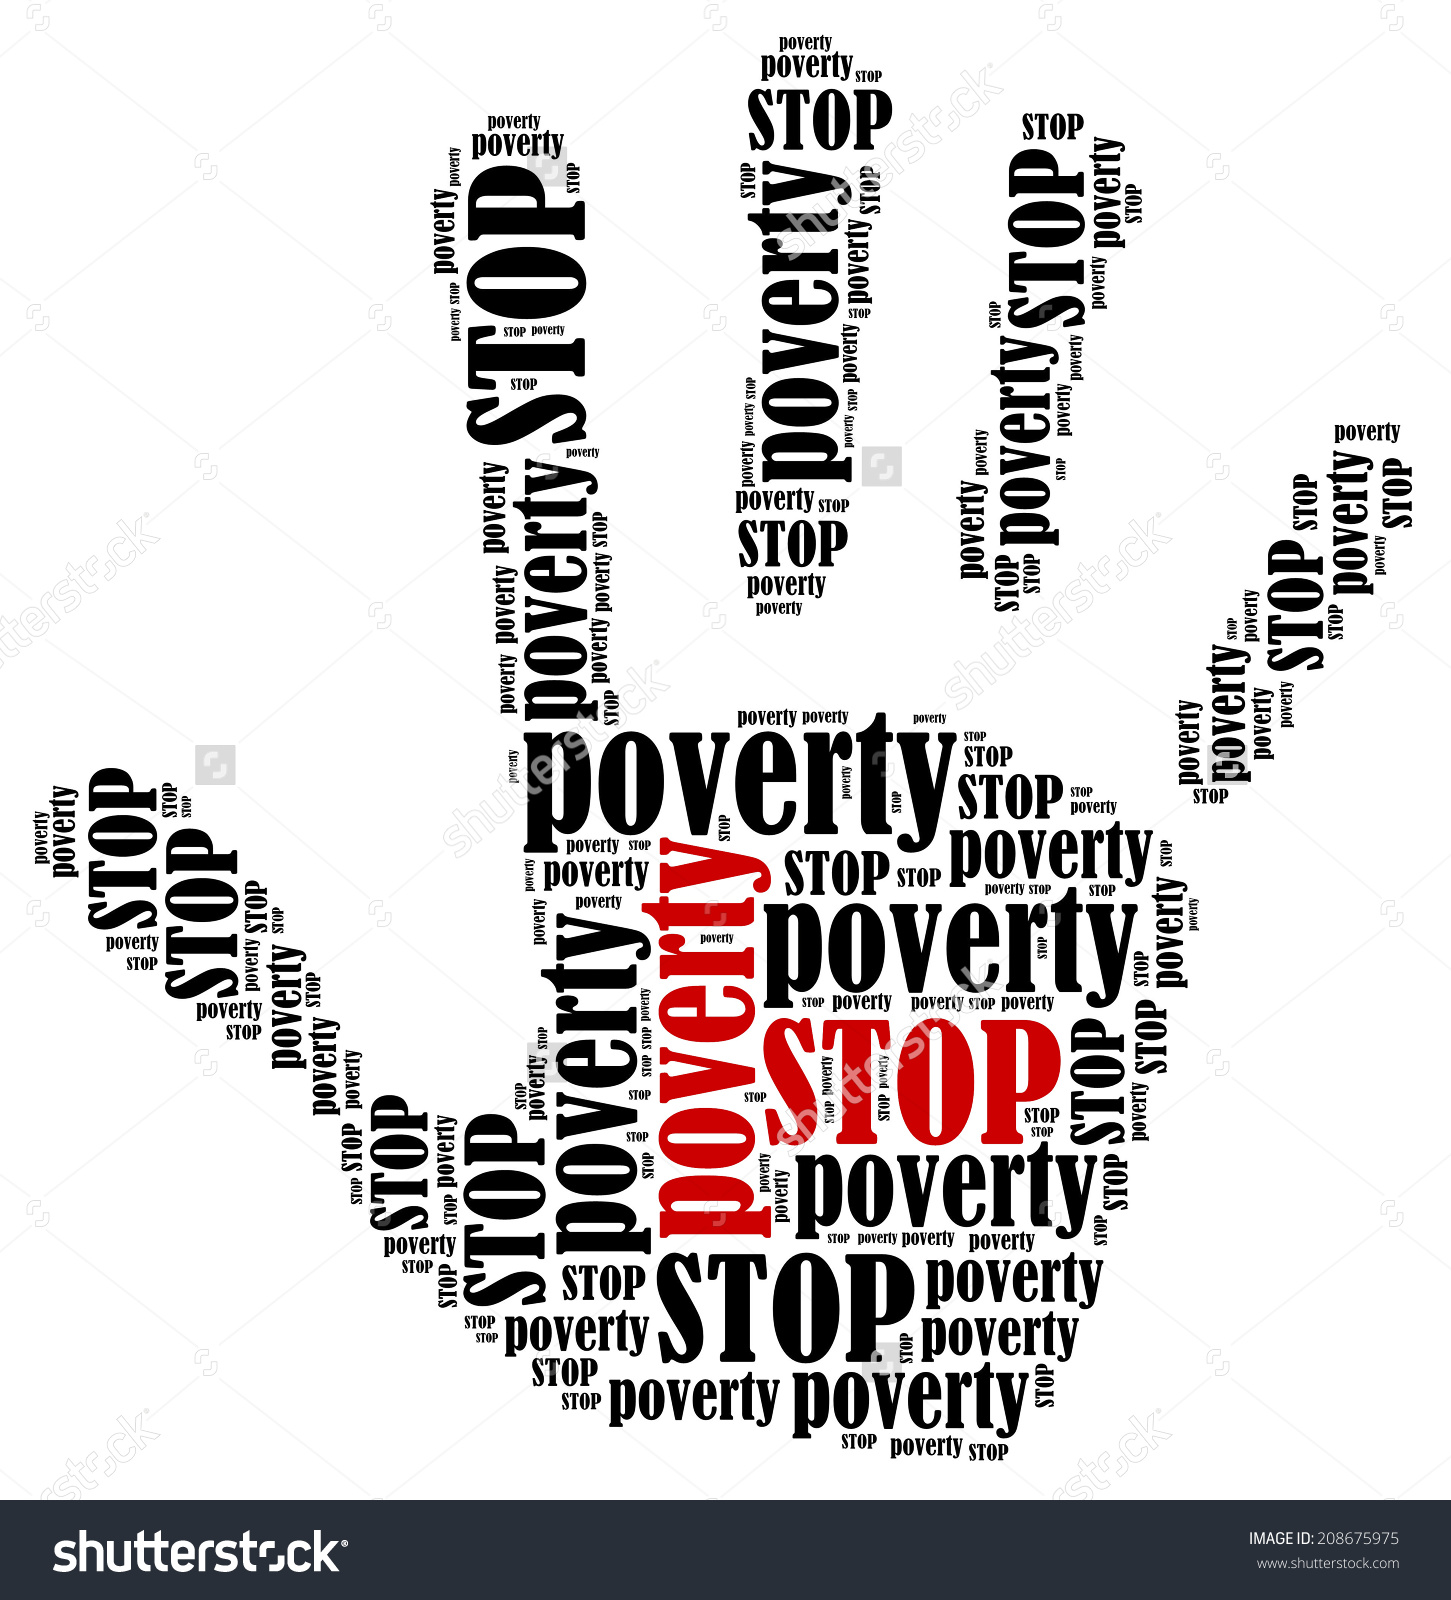 poverty clip art clipart panda free clipart images helping hand clipart for nonprofit helping hands clip art free images